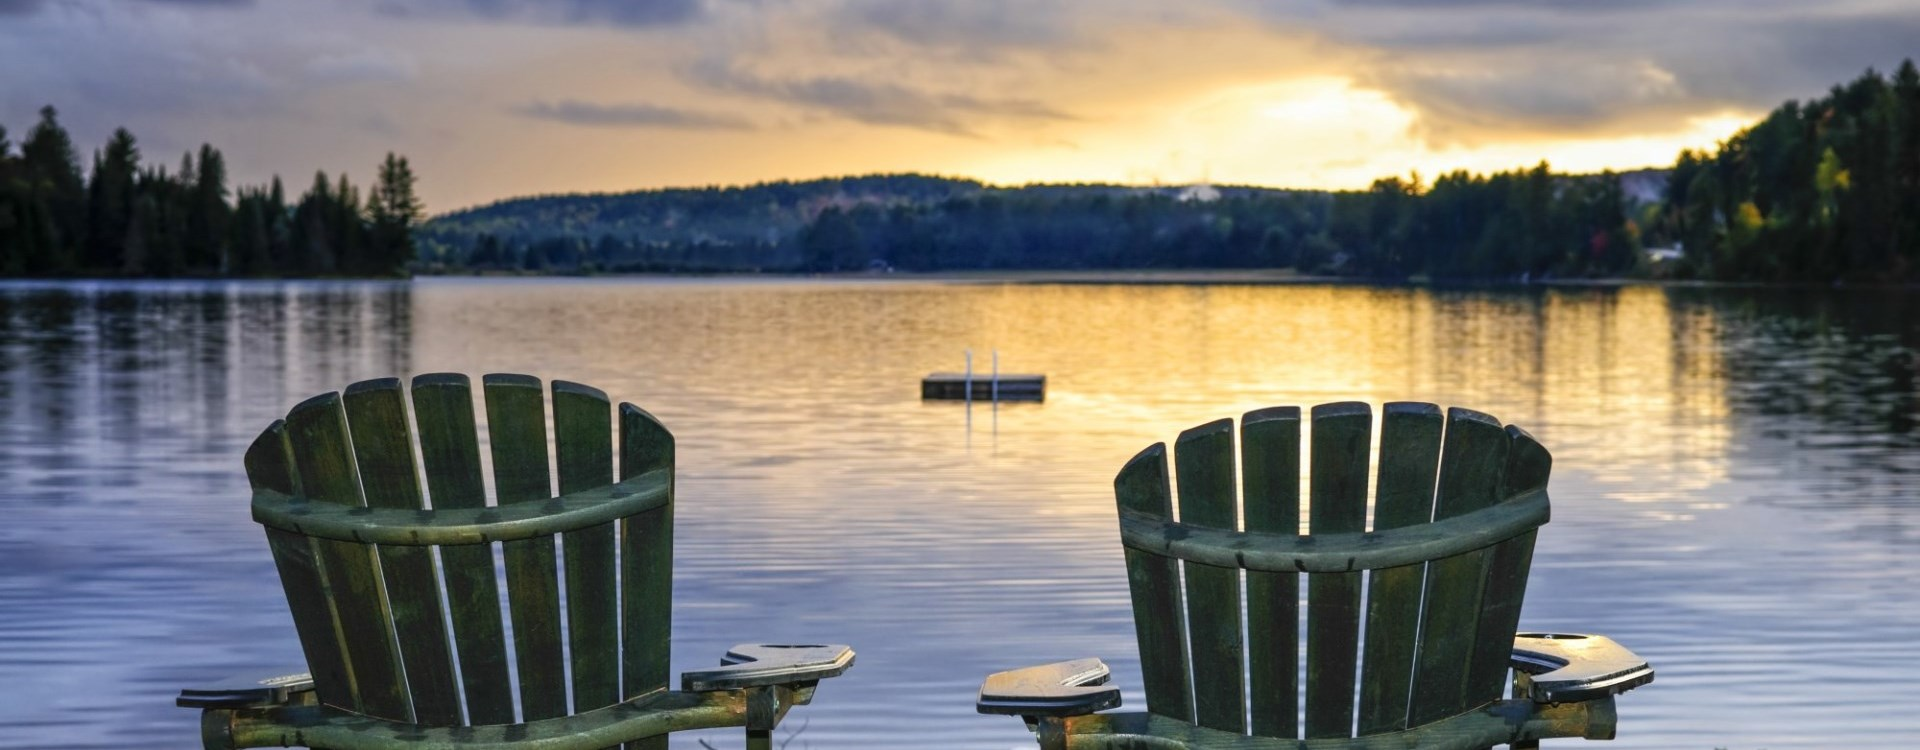 Muskoka Chairs lakeside